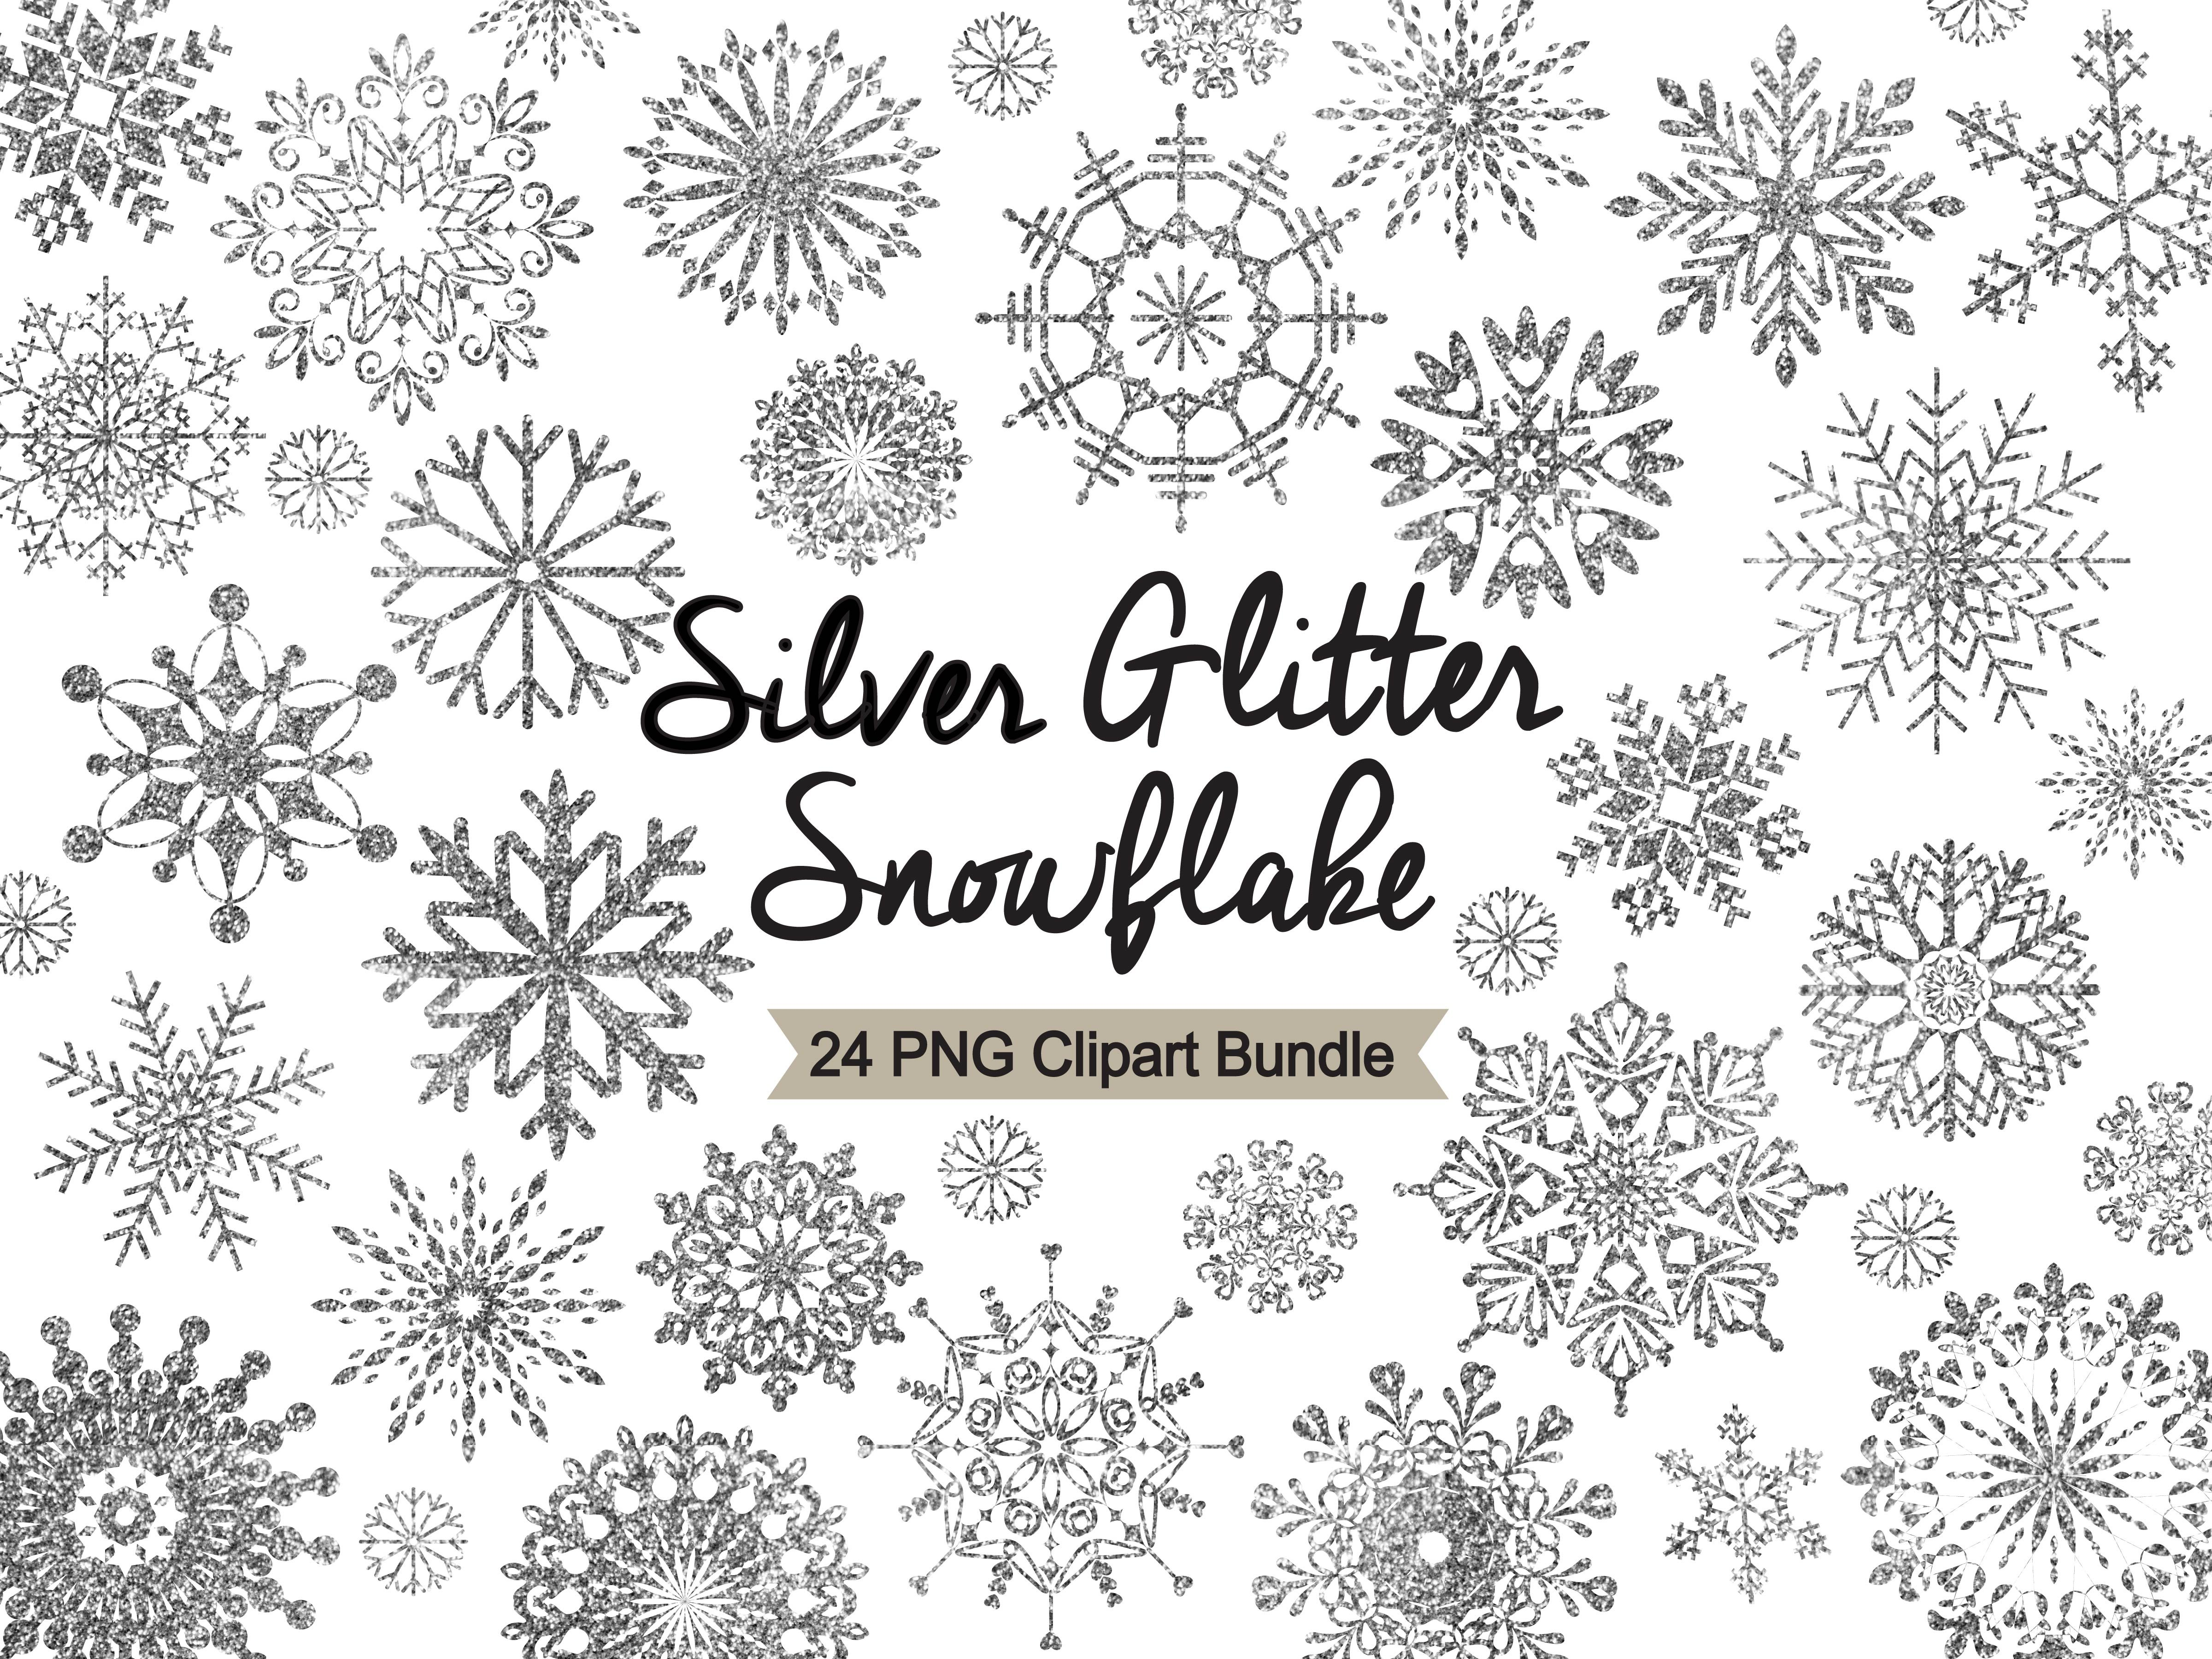 Silver snowflakes clipart image royalty free download Silver Glitter Snowflake Clipart image royalty free download